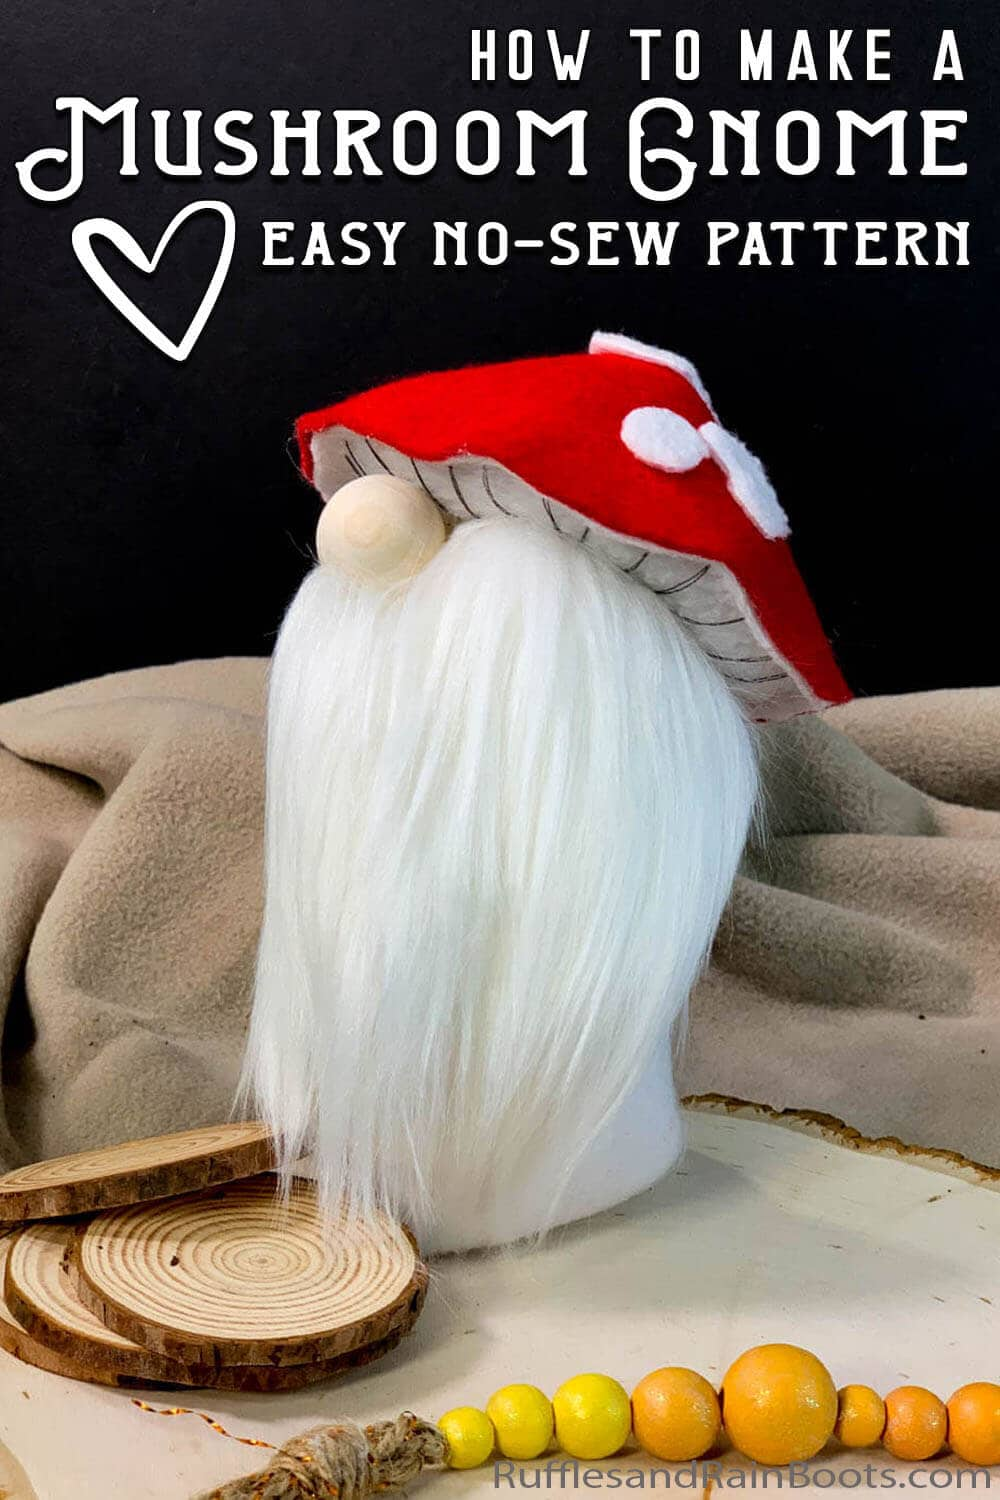 easy gnome with a mushroom hat with text which reads how to make a mushroom gnome easy no-sew pattern